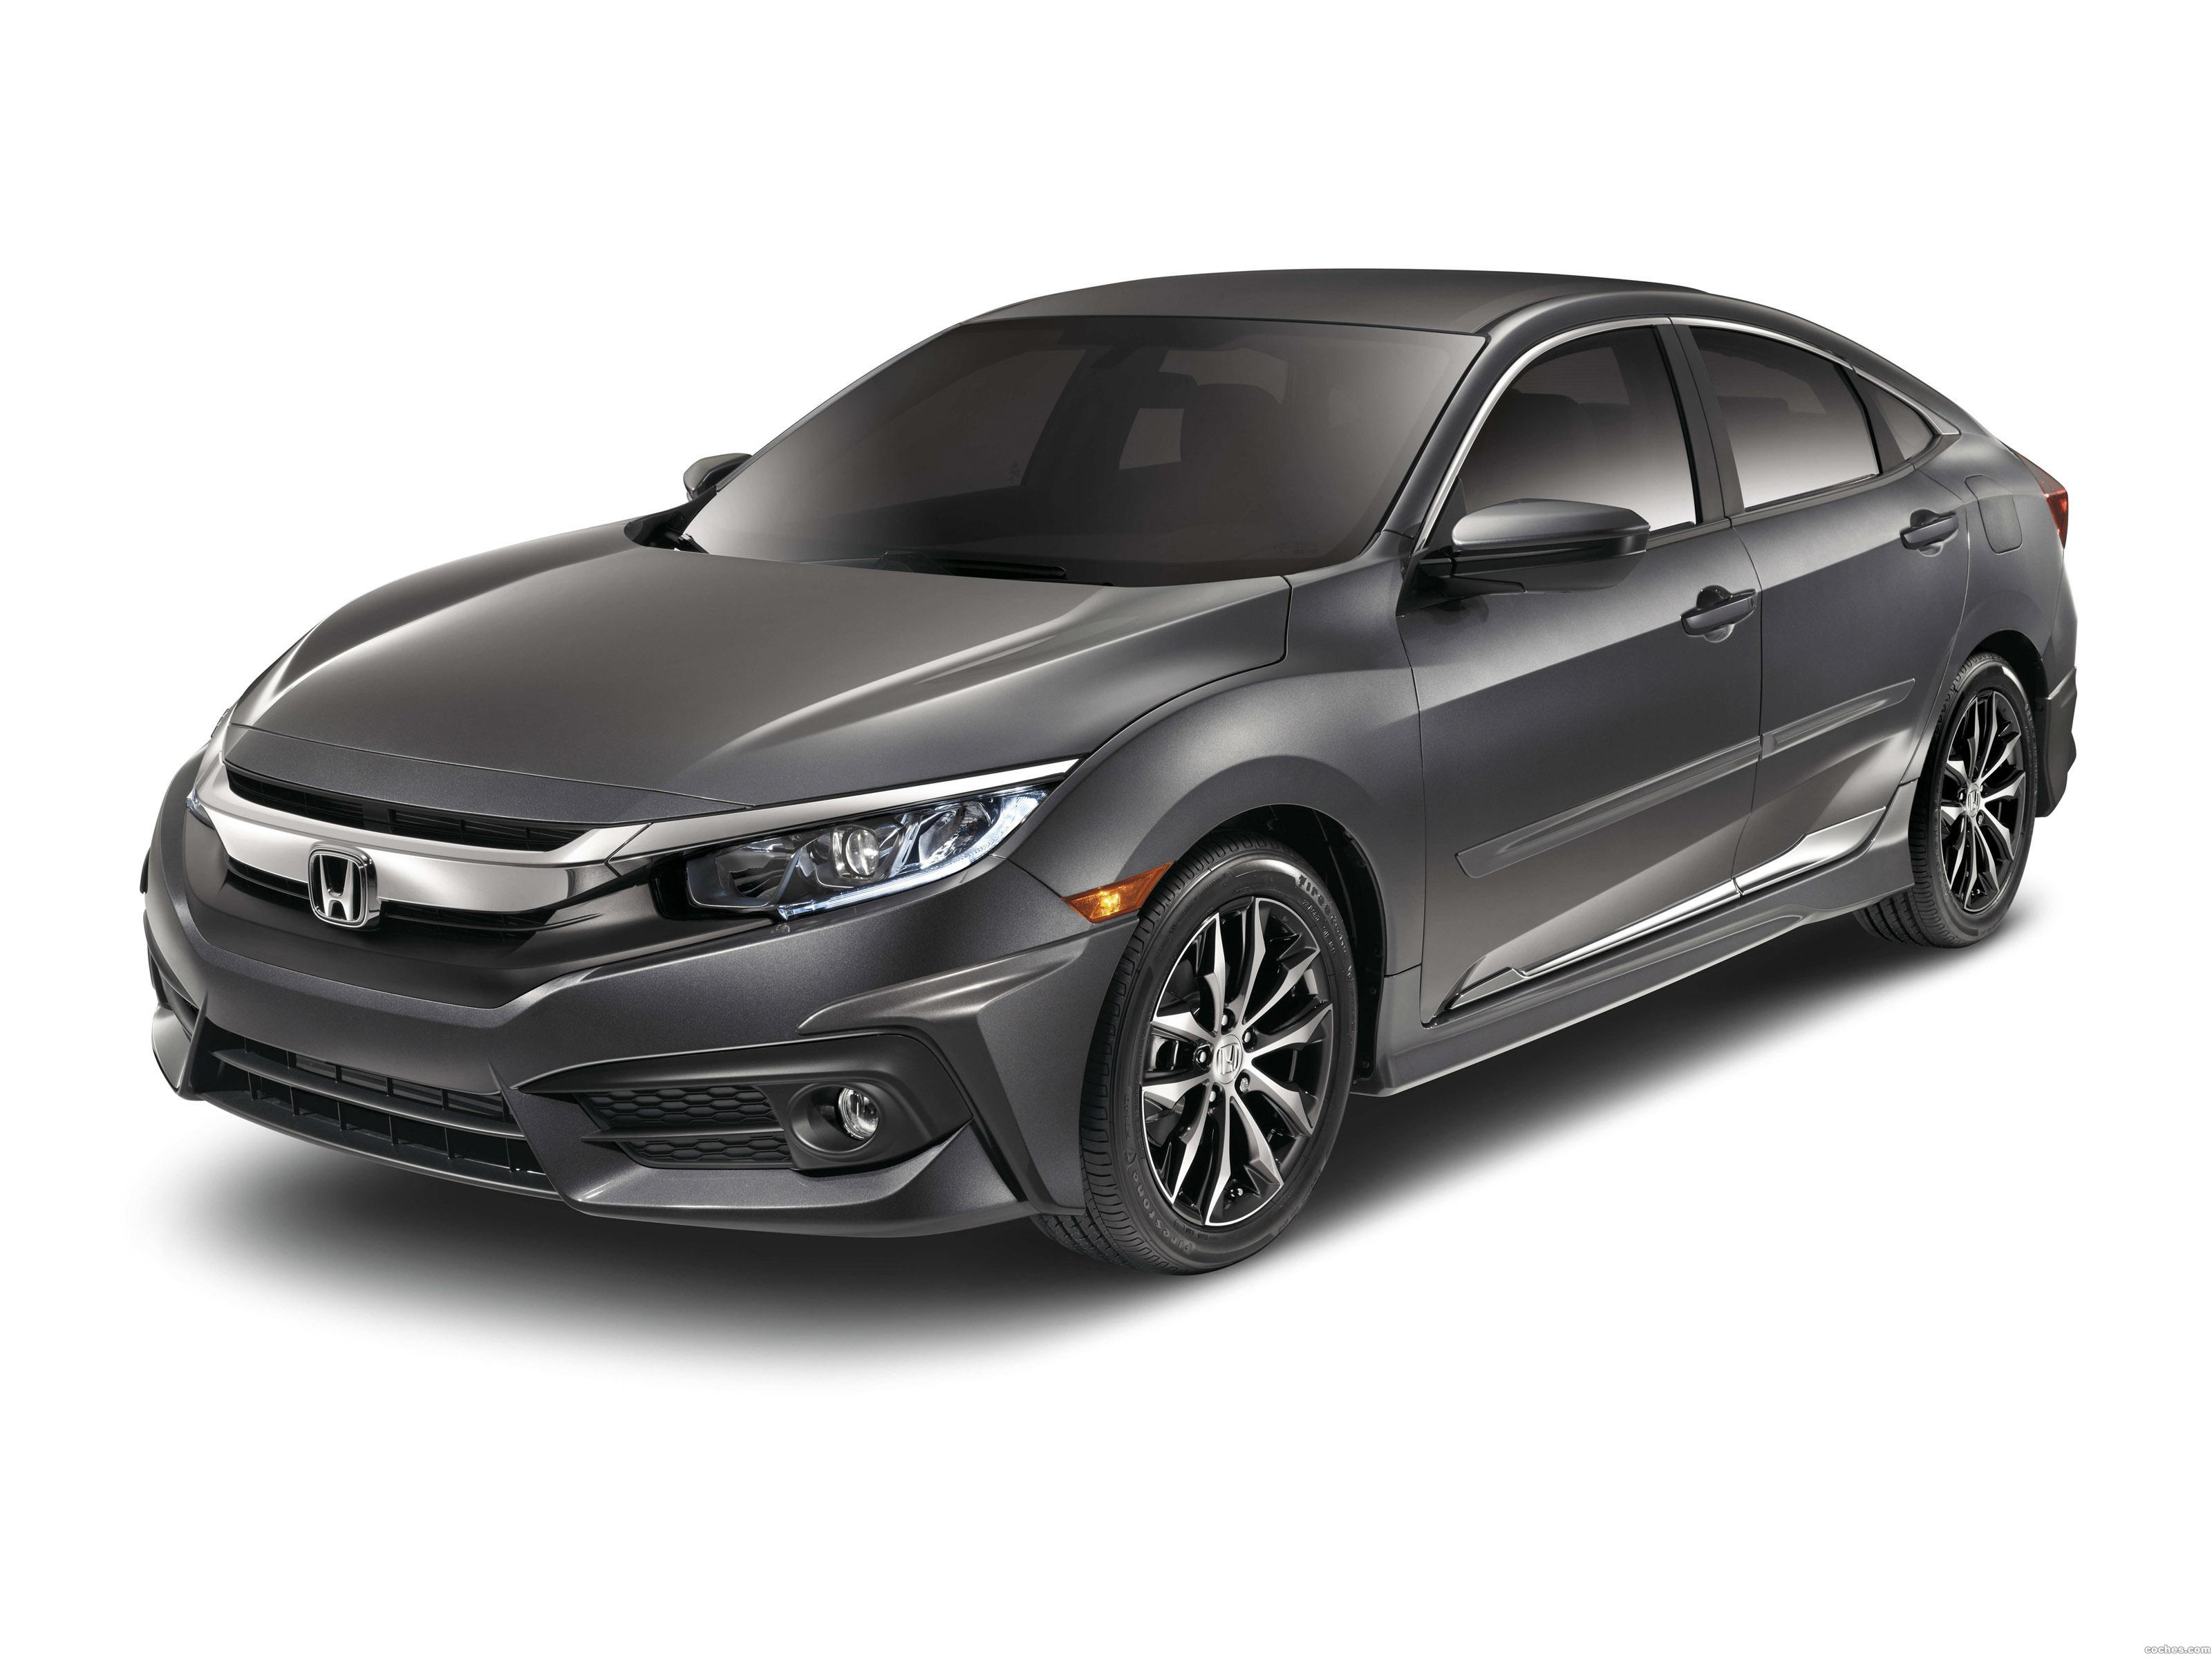 Foto 0 de Honda Civic Sedan With Genuine Accessories USA 2015